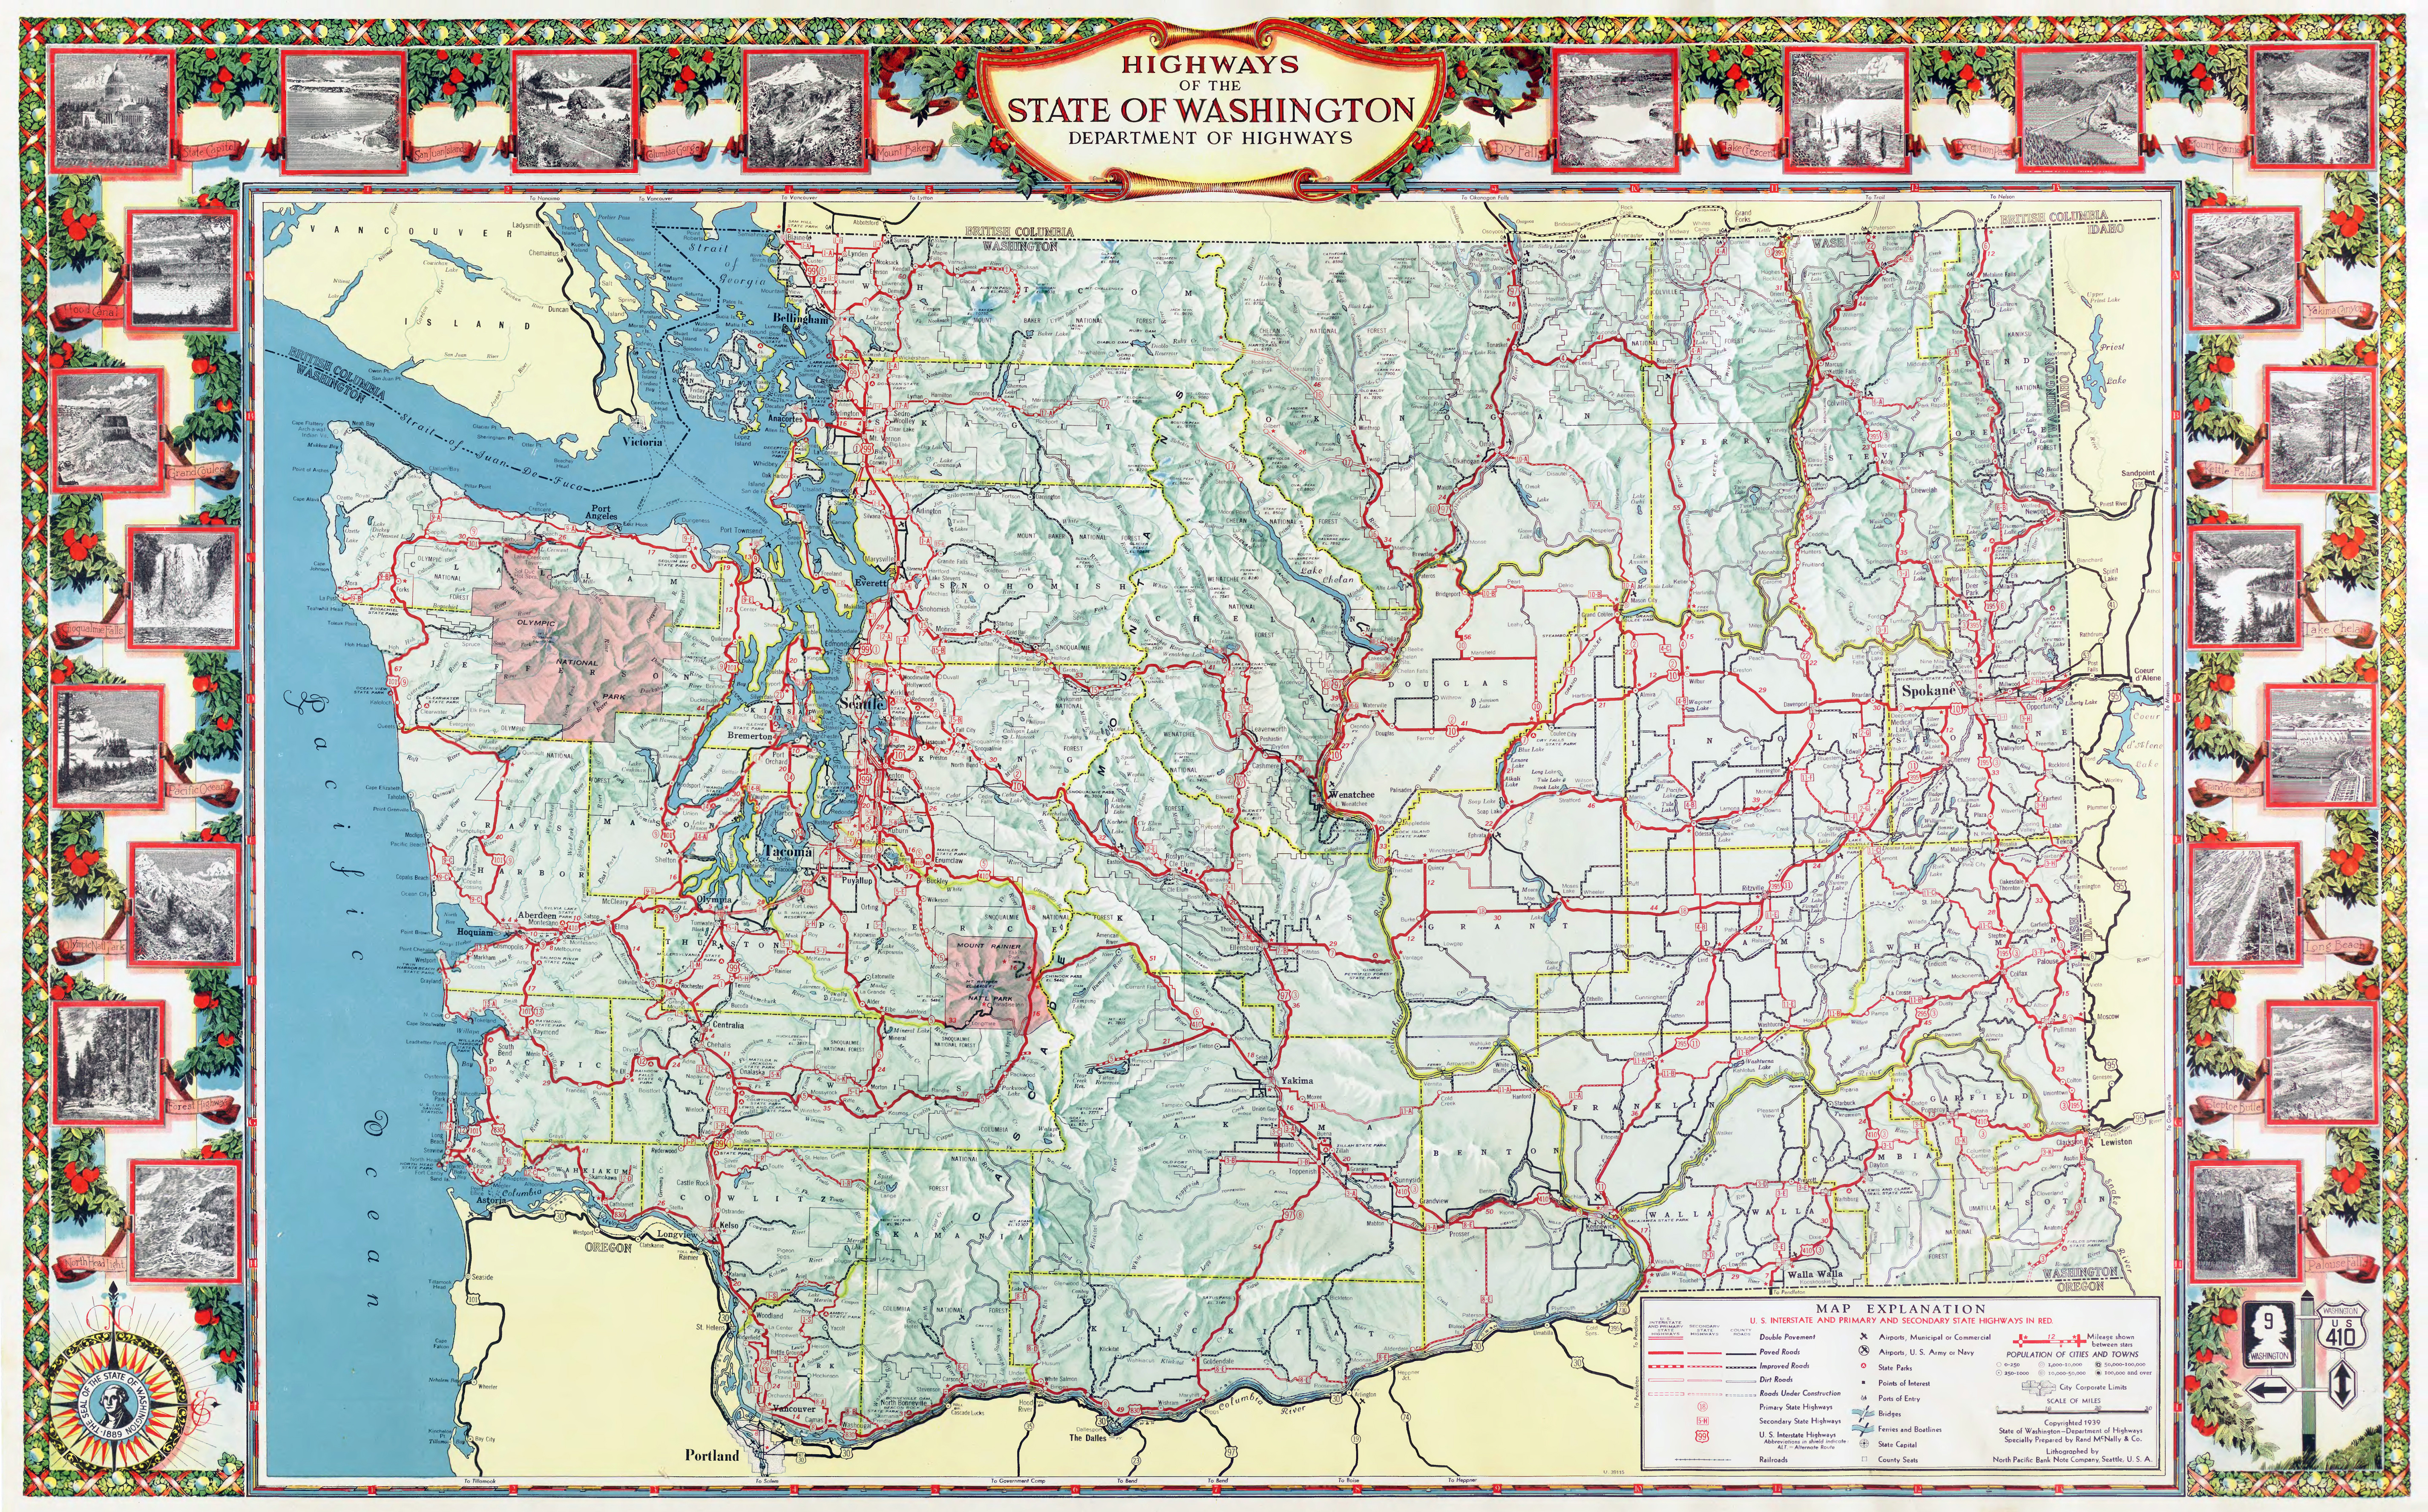 Large Scale Detailed Highway Map Of The State Of Washington With - Detailed map of washington state